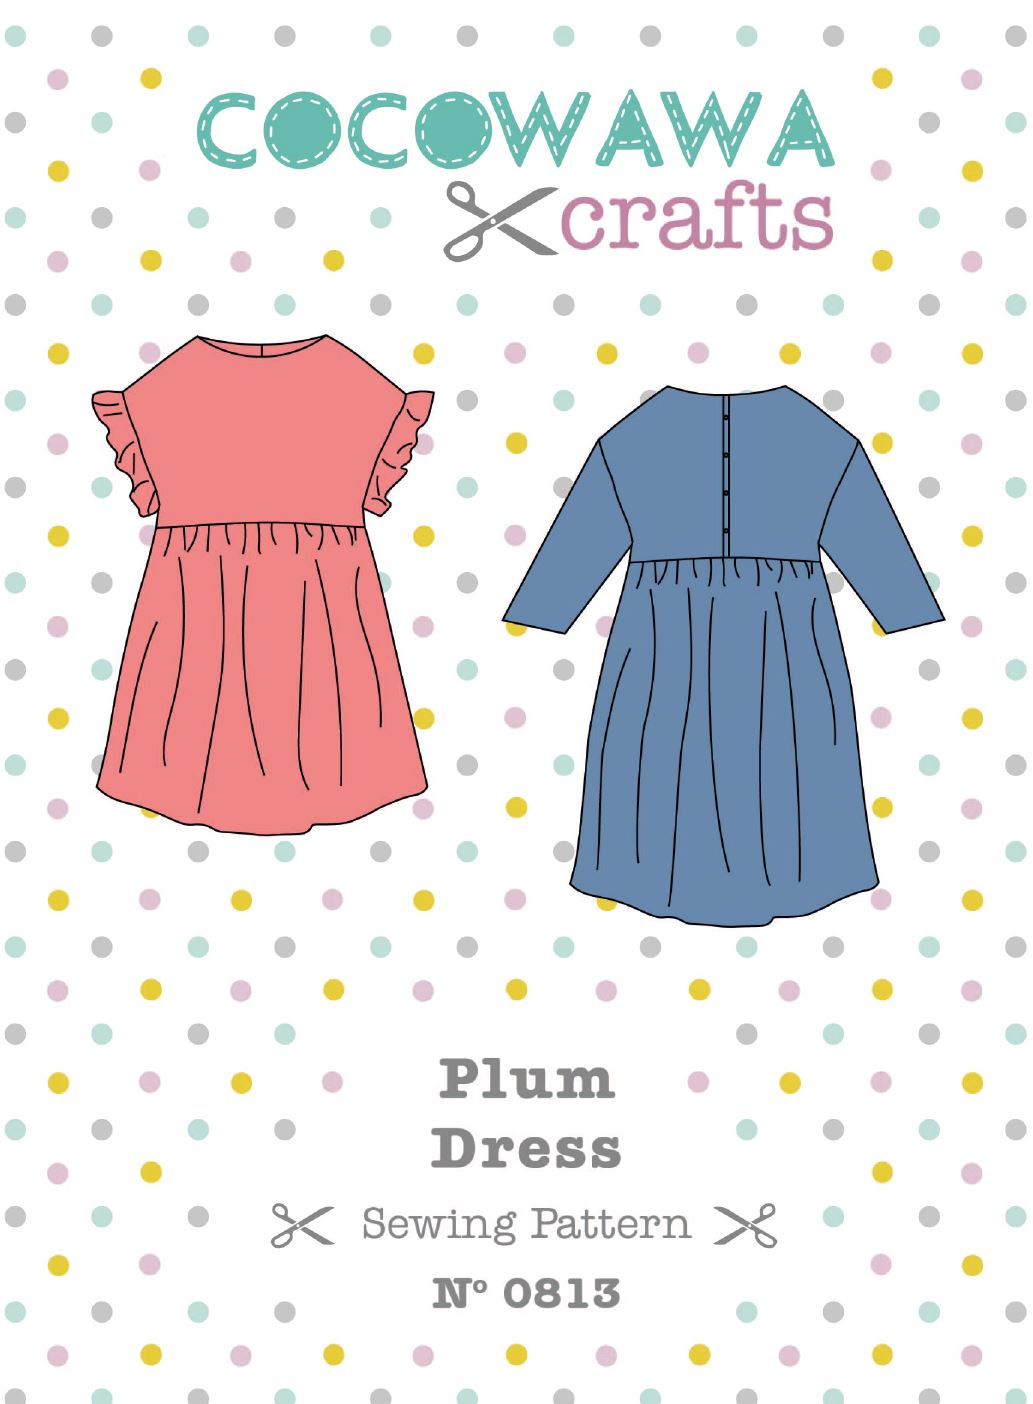 Plum-Dress-sewing-pattern-CocoWawa-Crafts-cover